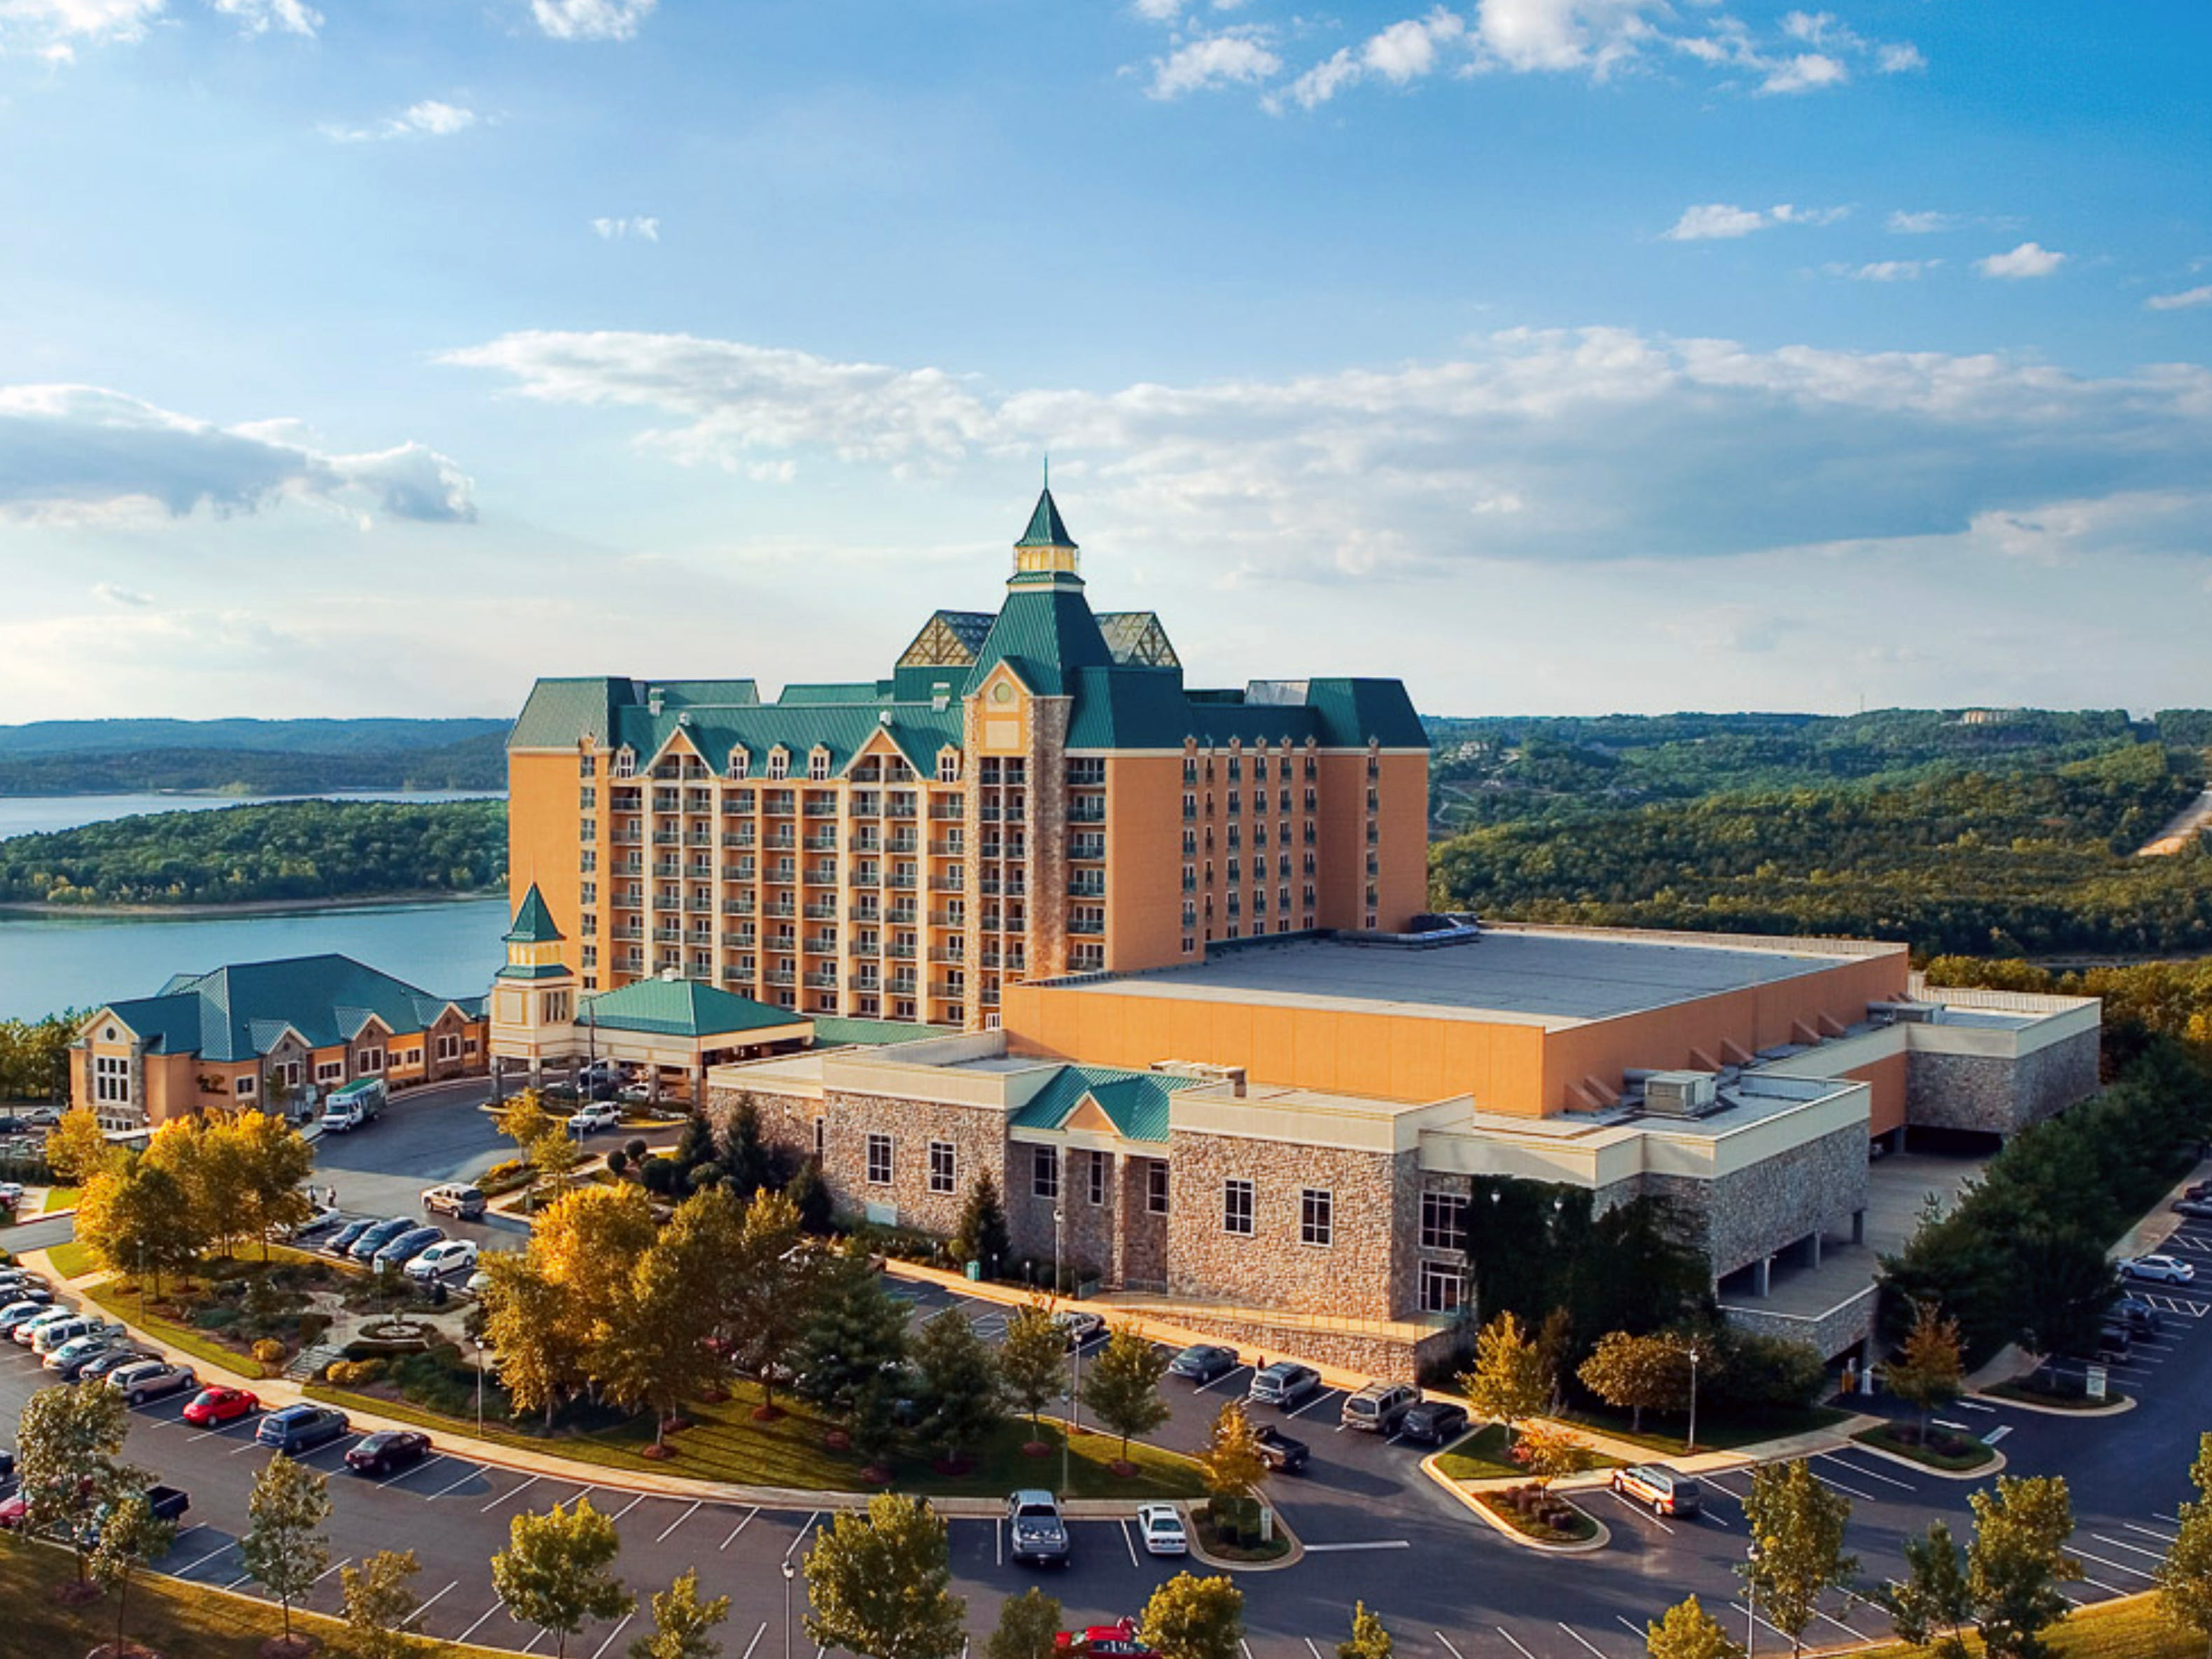 The Chateau on the Lake resort in Branson, Missouri.